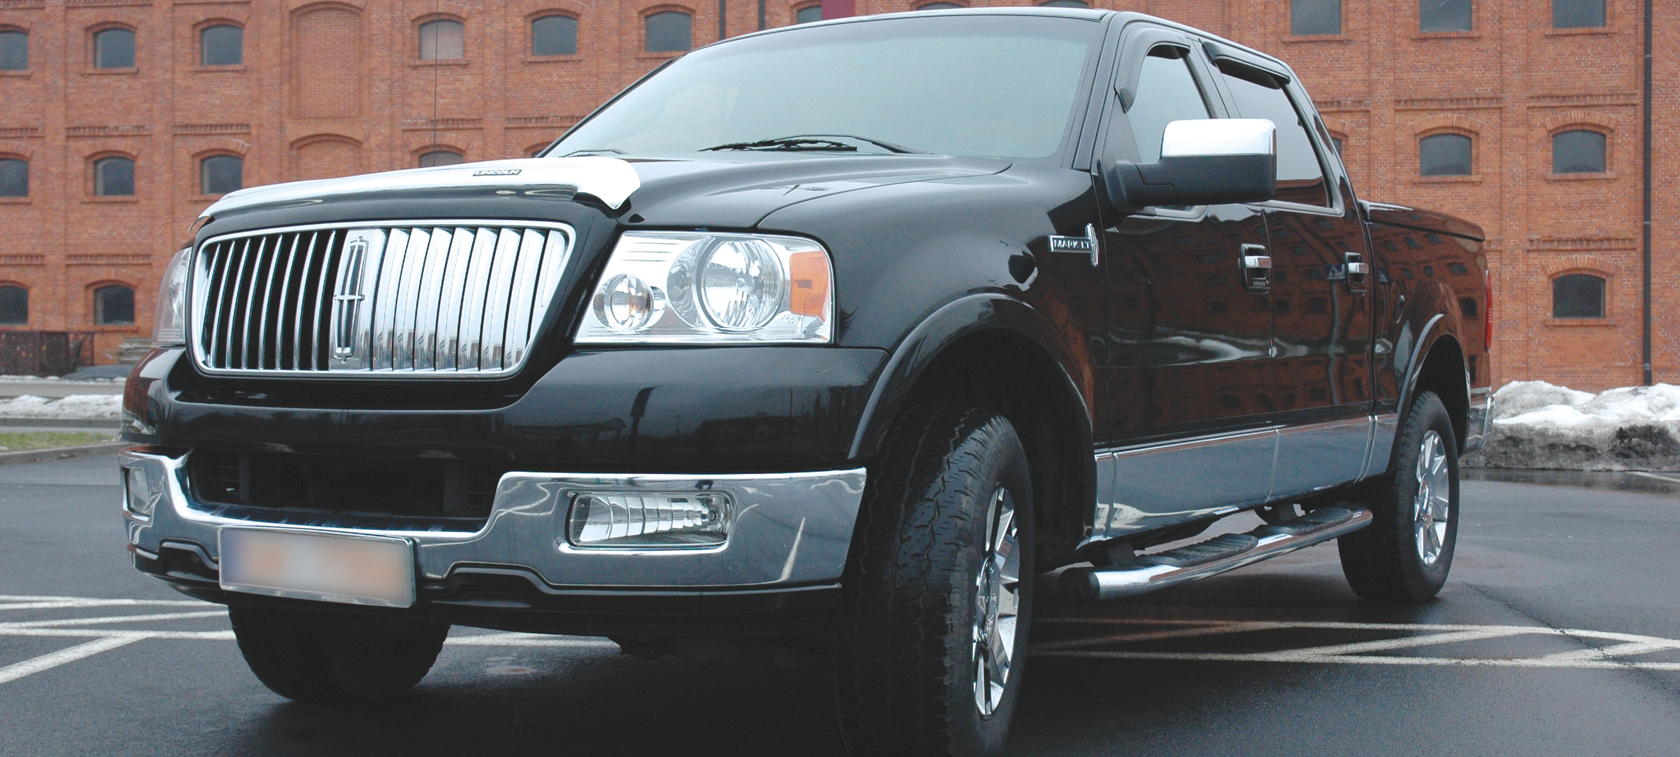 Lincoln Mark LT od Nagaz